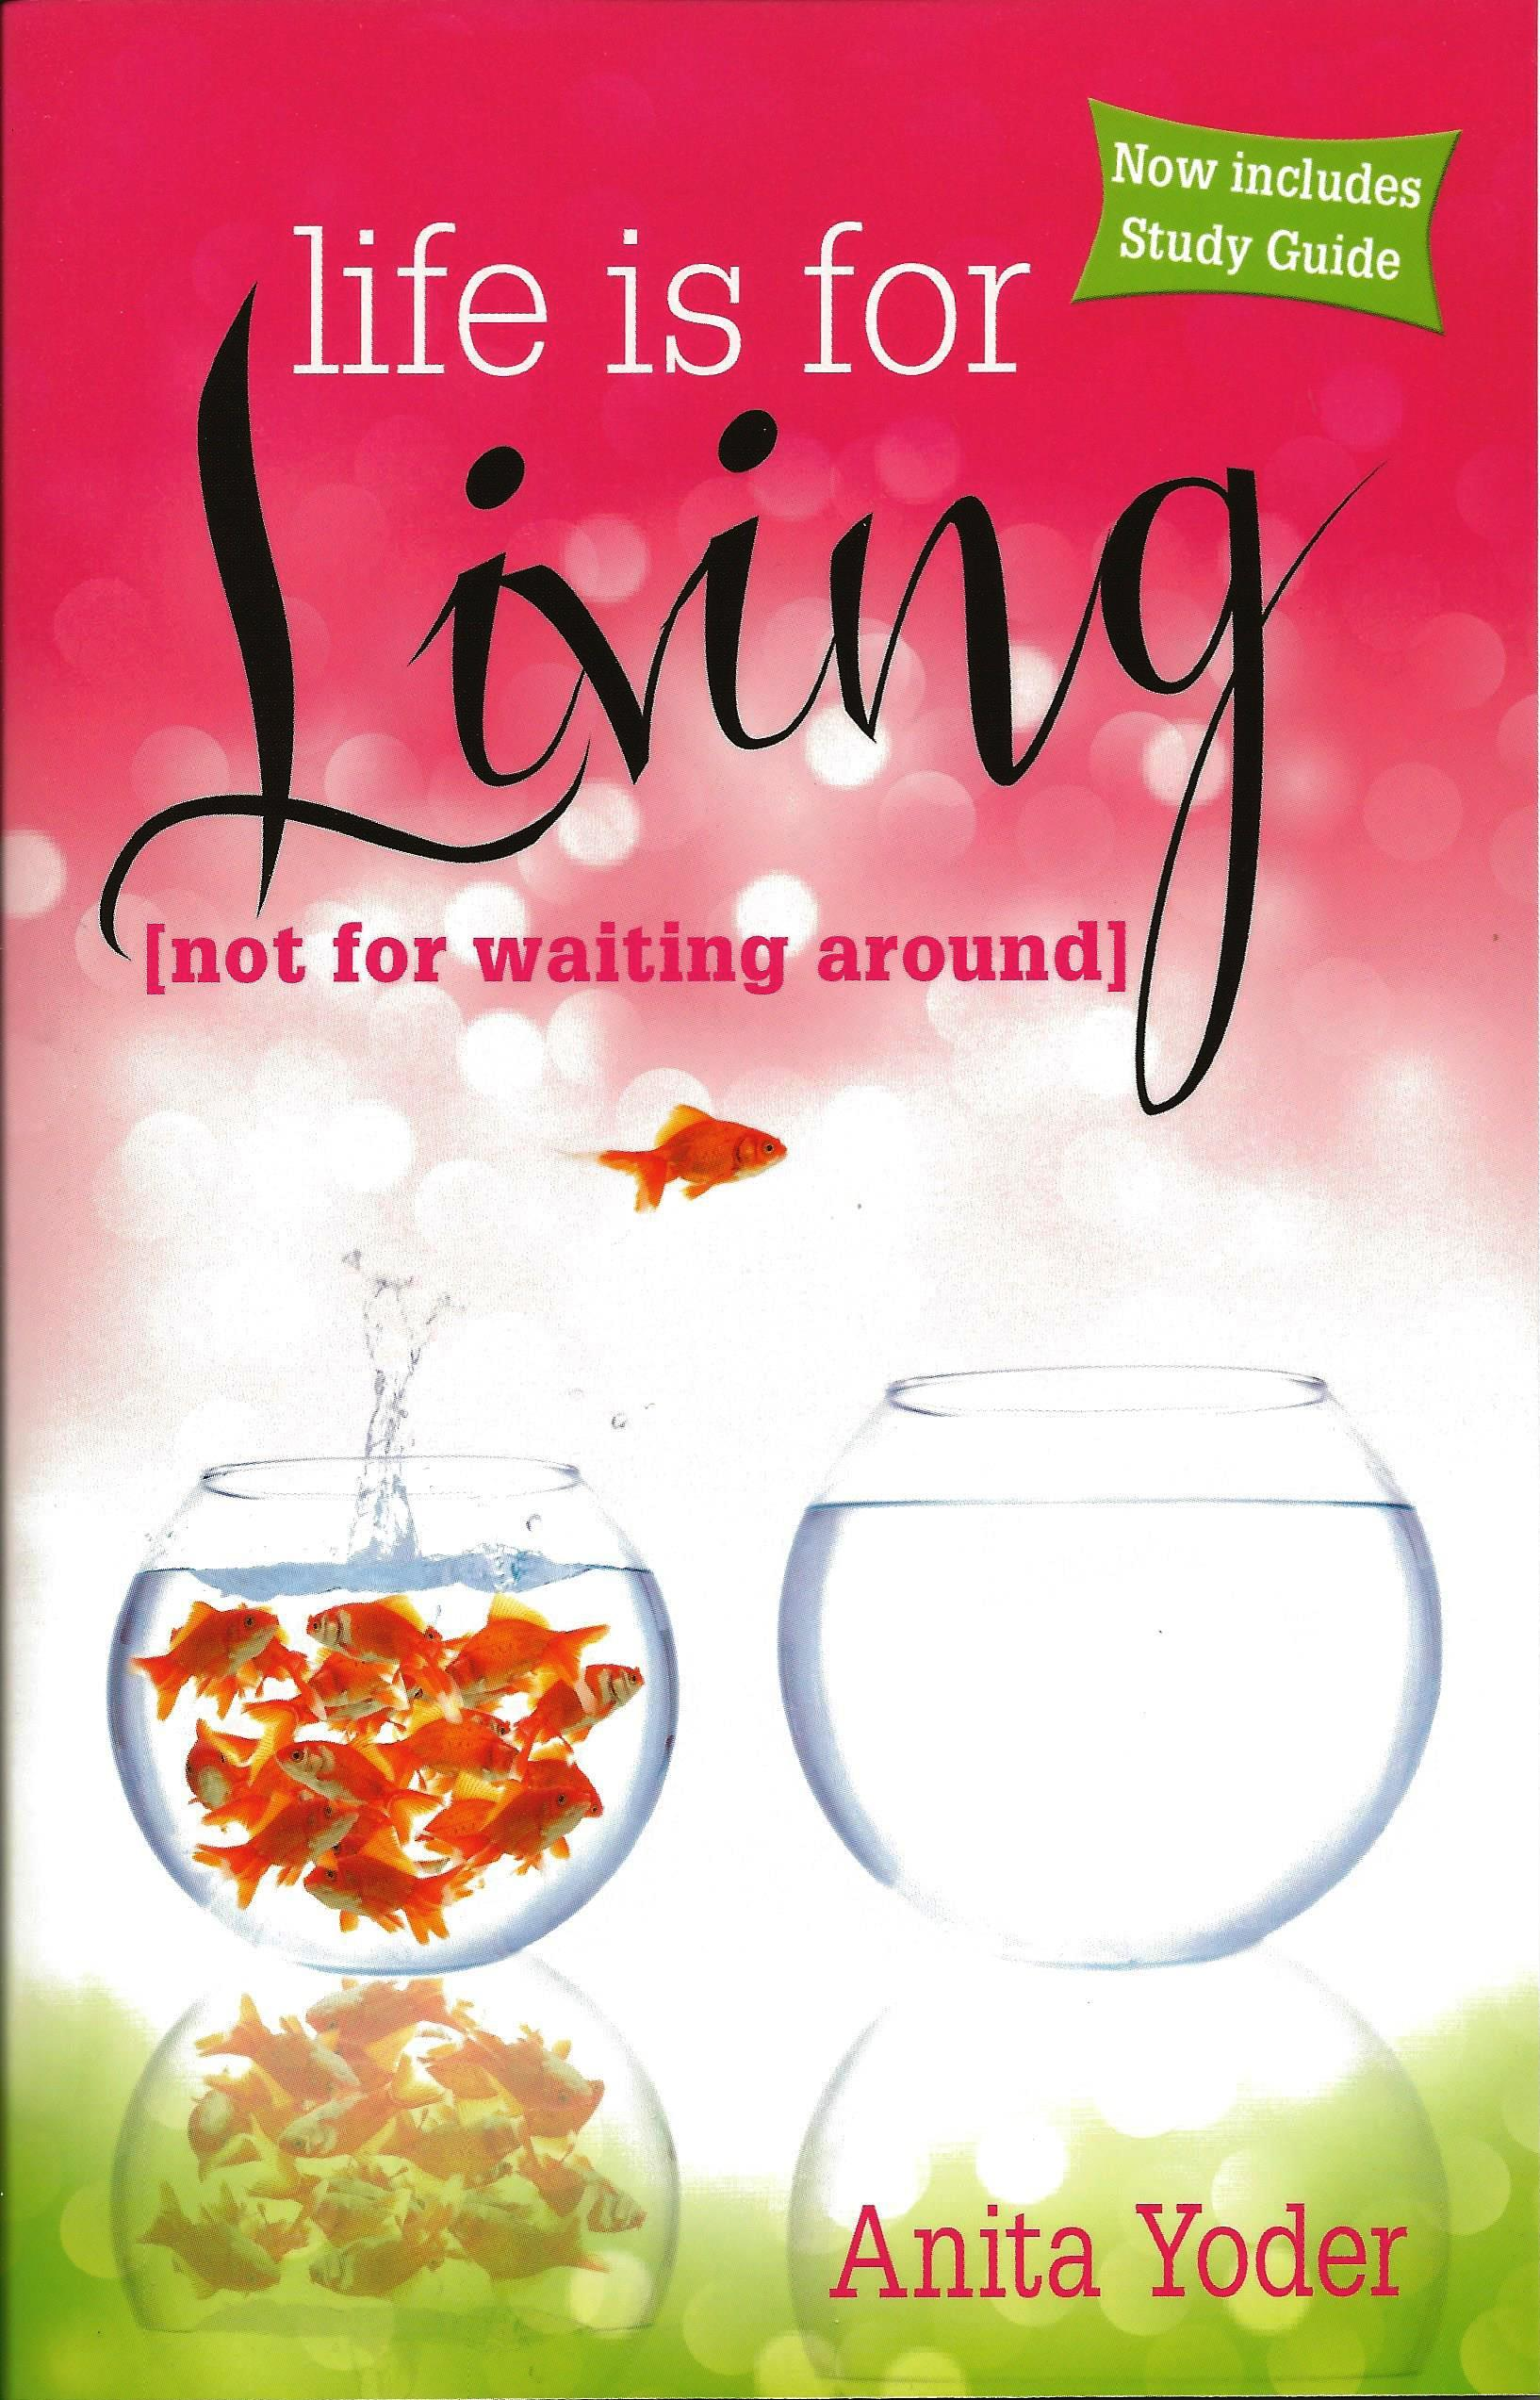 LIFE IS FOR LIVING (NOT FOR WAITING AROUND) Anita Yoder